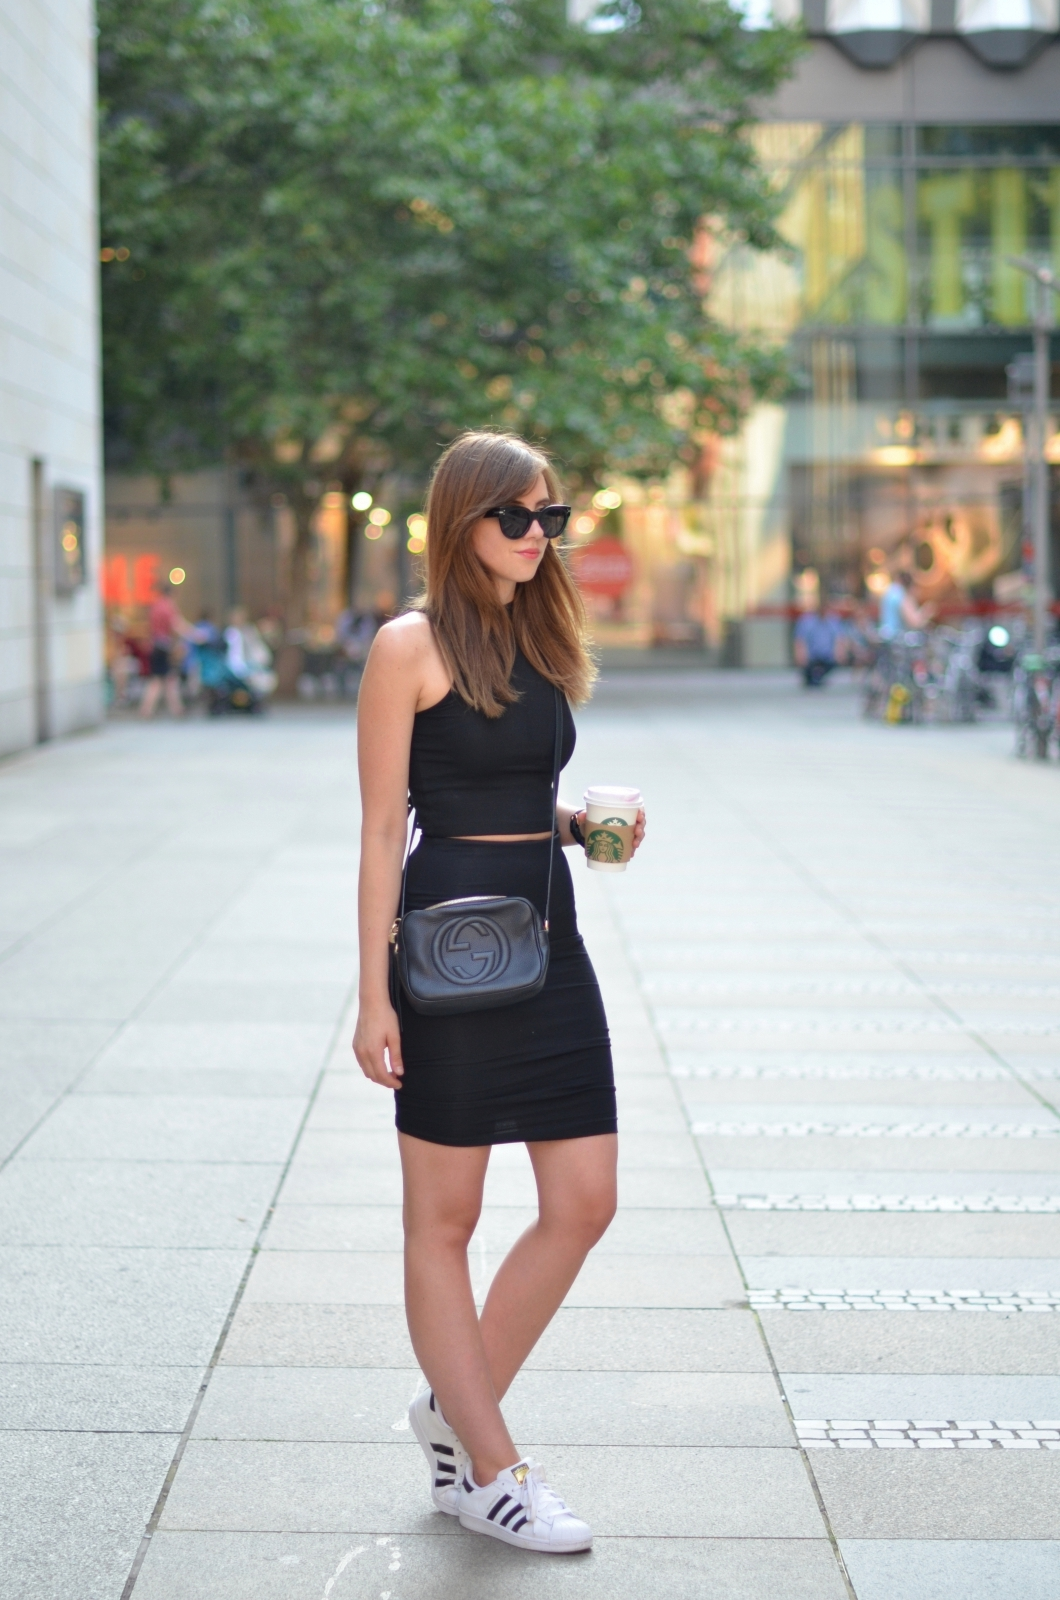 Barbora Ondrackova is ready to run through the streets for her Starbucks in this all-black cropped top and pencil skirt combo. Switch out the sneaks for heels or booties and add a smoky eye and nude lip and you'll be ready to run right through the night, too! Skirt: H&M, Top: Choies, Shoes: Adidas, Purse: Gucci, Sunglasses: Celine, Watch: Kapten&Son